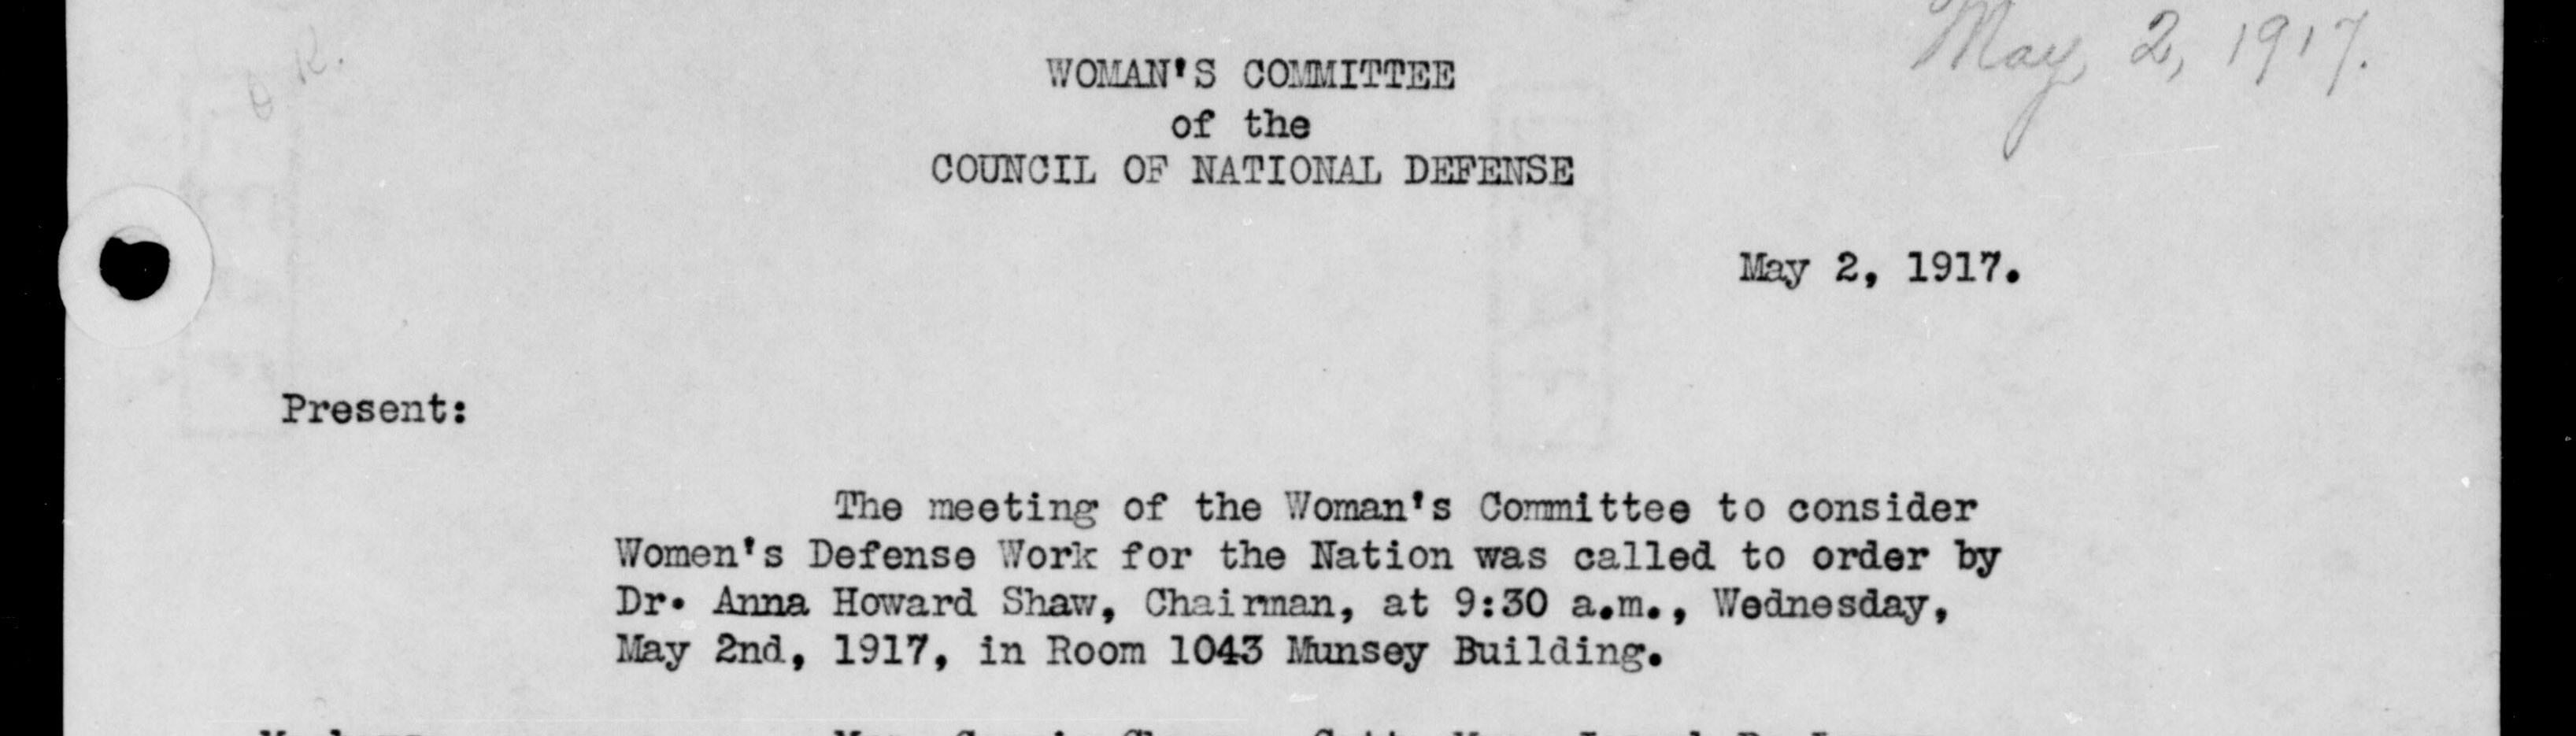 Records of the Council of National Defense